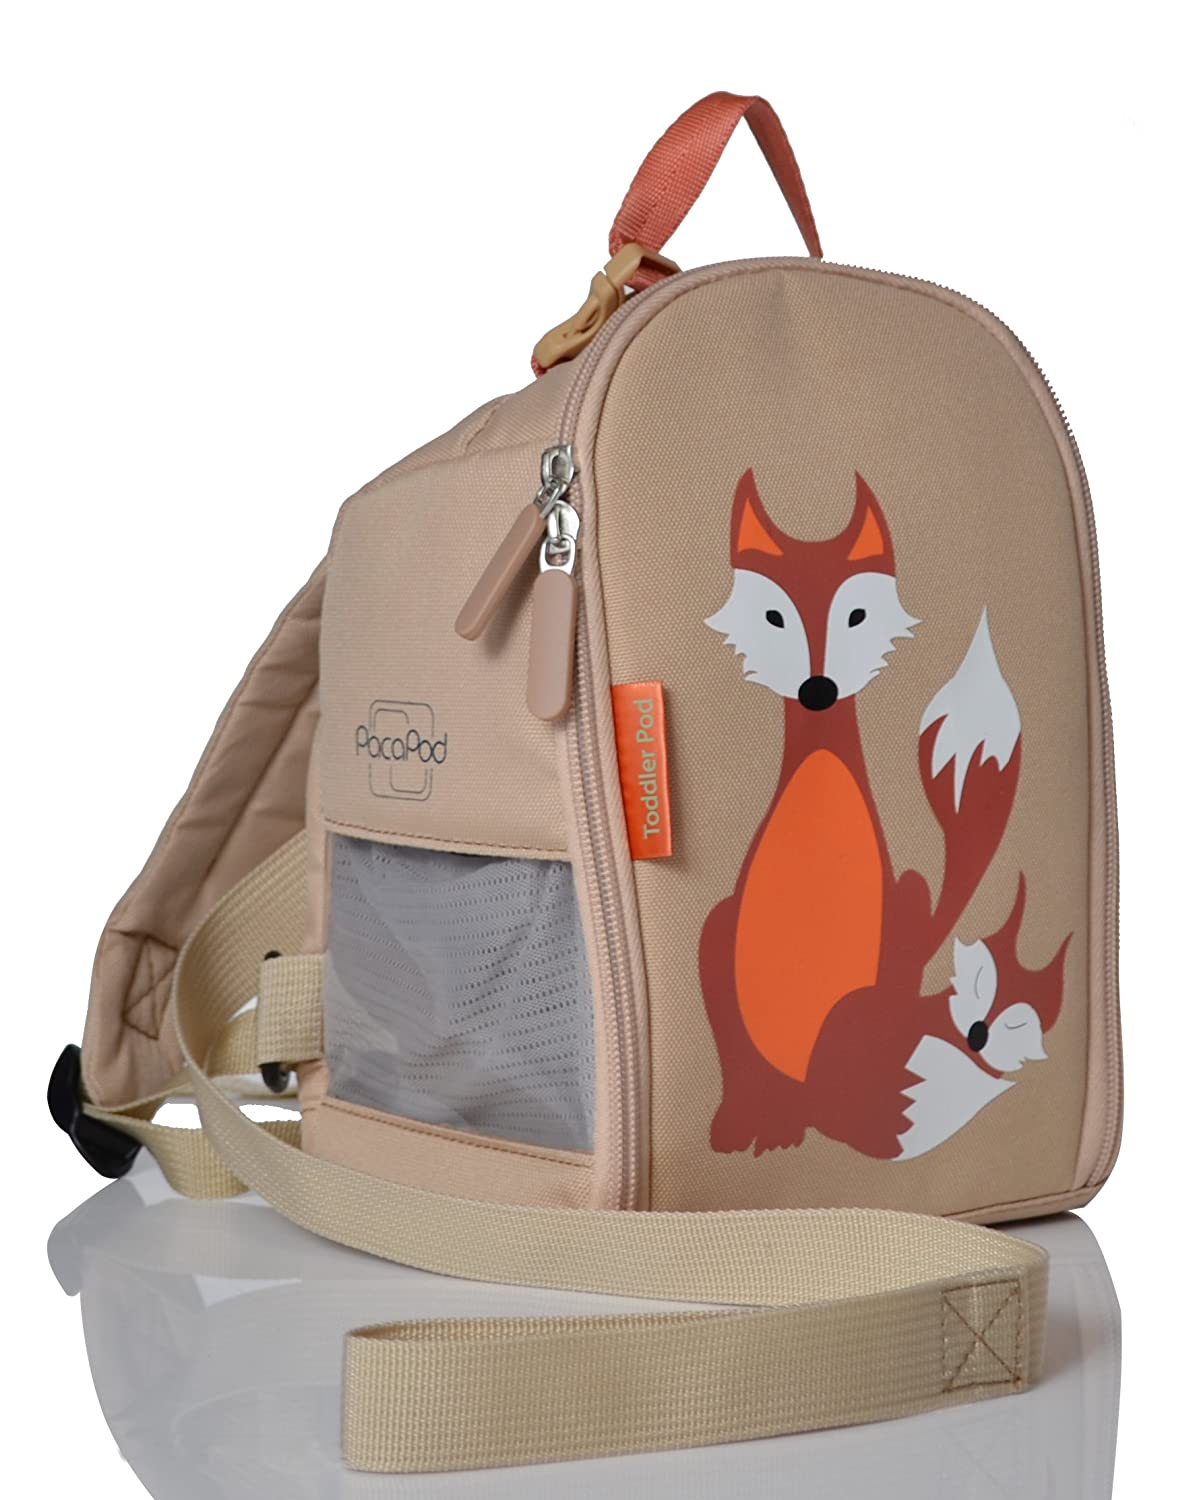 PacaPod Designer Toddler Pod - Fox & Babe - Luxury Pod With Internal Pockets. Backpack Straps And Safety Rein For Toddlers